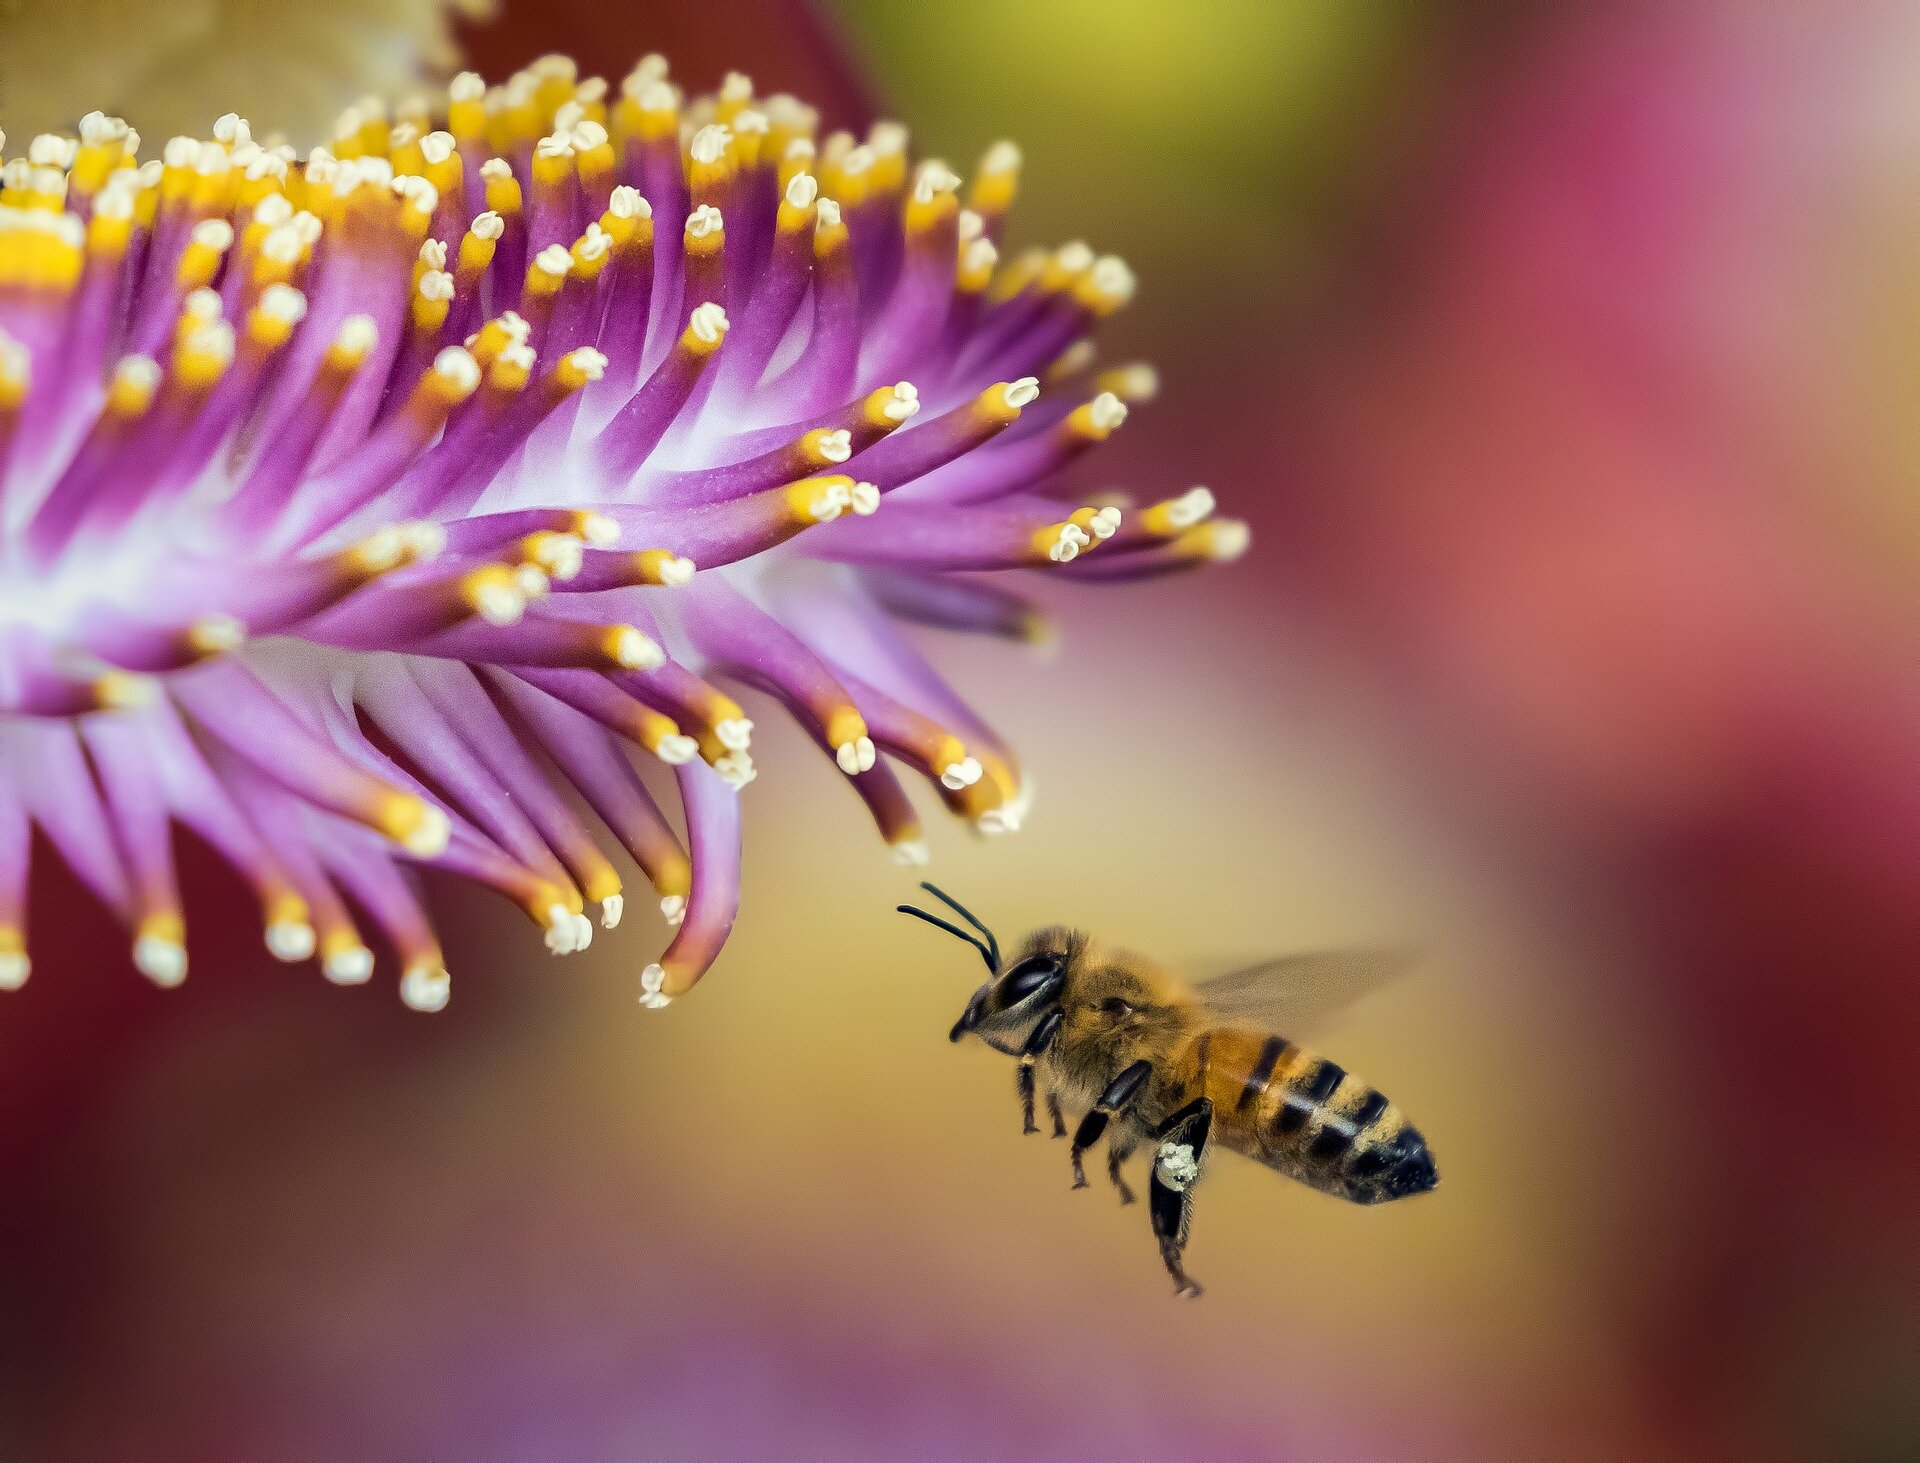 Royal jelly does not a queen make